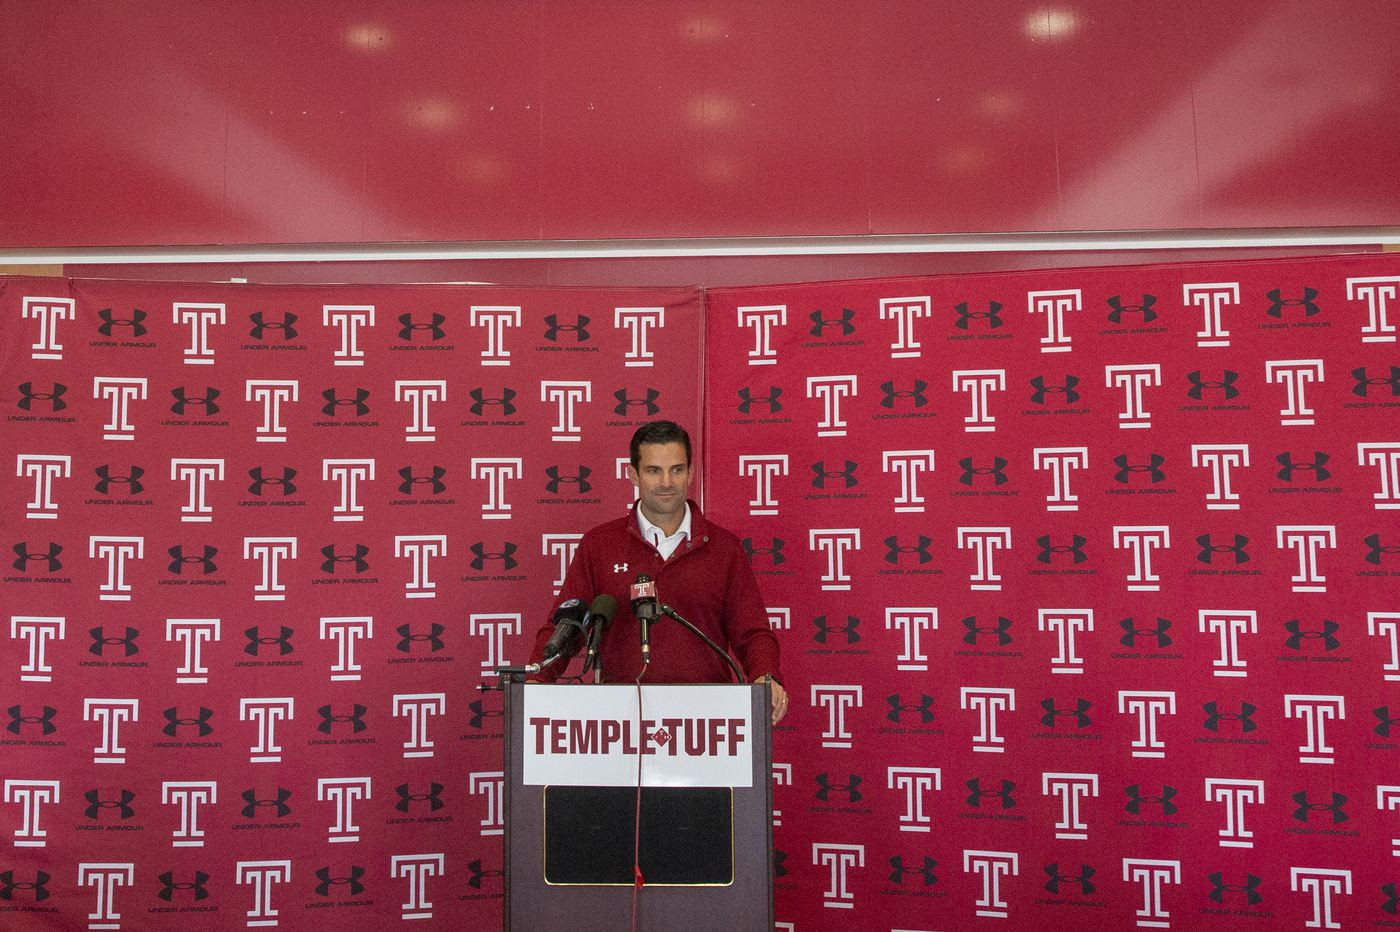 Temple football's recruiting class stays intact as Manny Diaz makes first impact on Owls